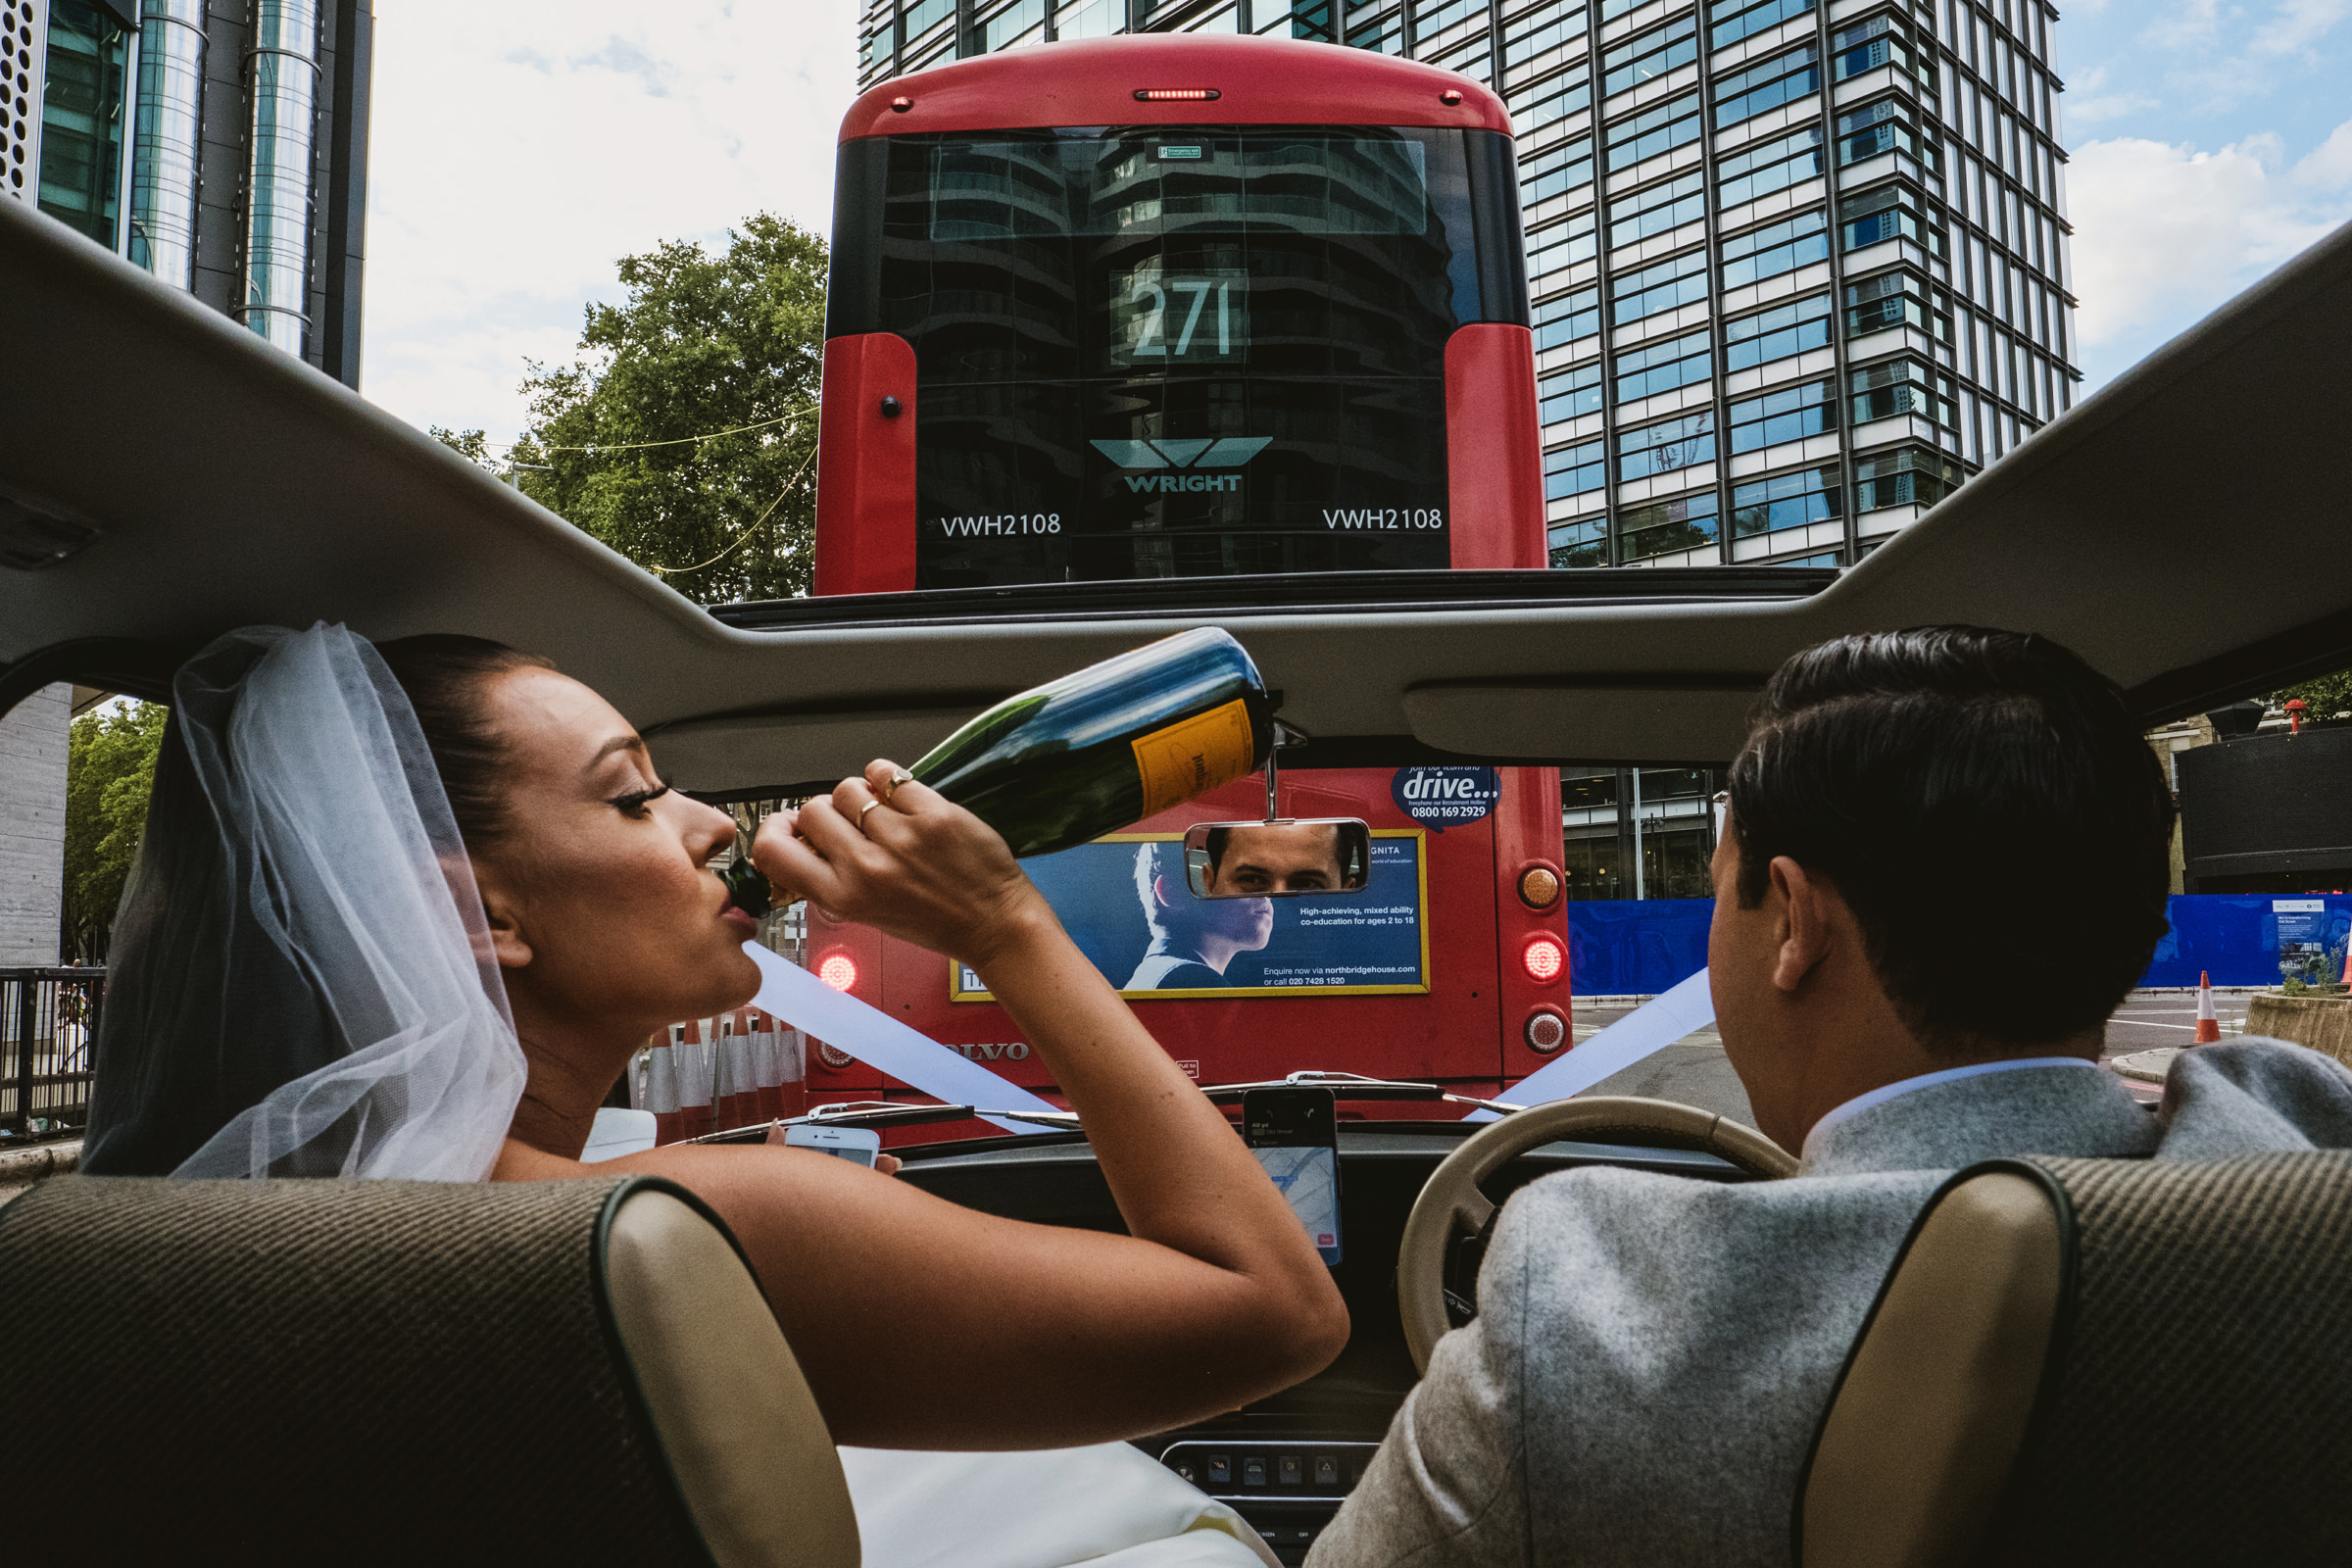 bride-in-limo-taking-a-swig-york-place-studios